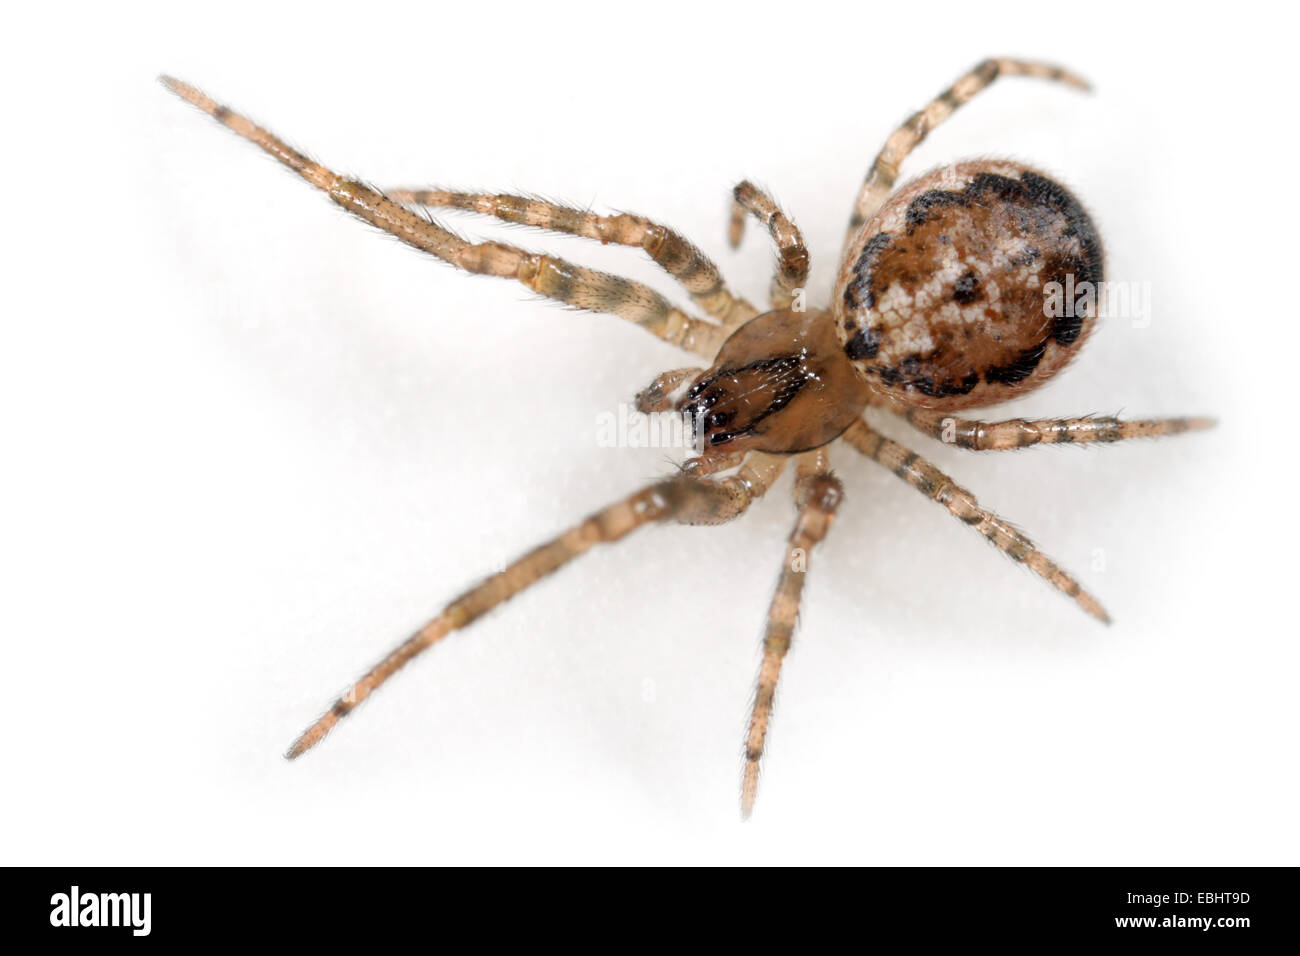 Female orb-weaving spider (Stroemiellus stroemi) on a white background. The spider is part of the family Araneidae, - Stock Image